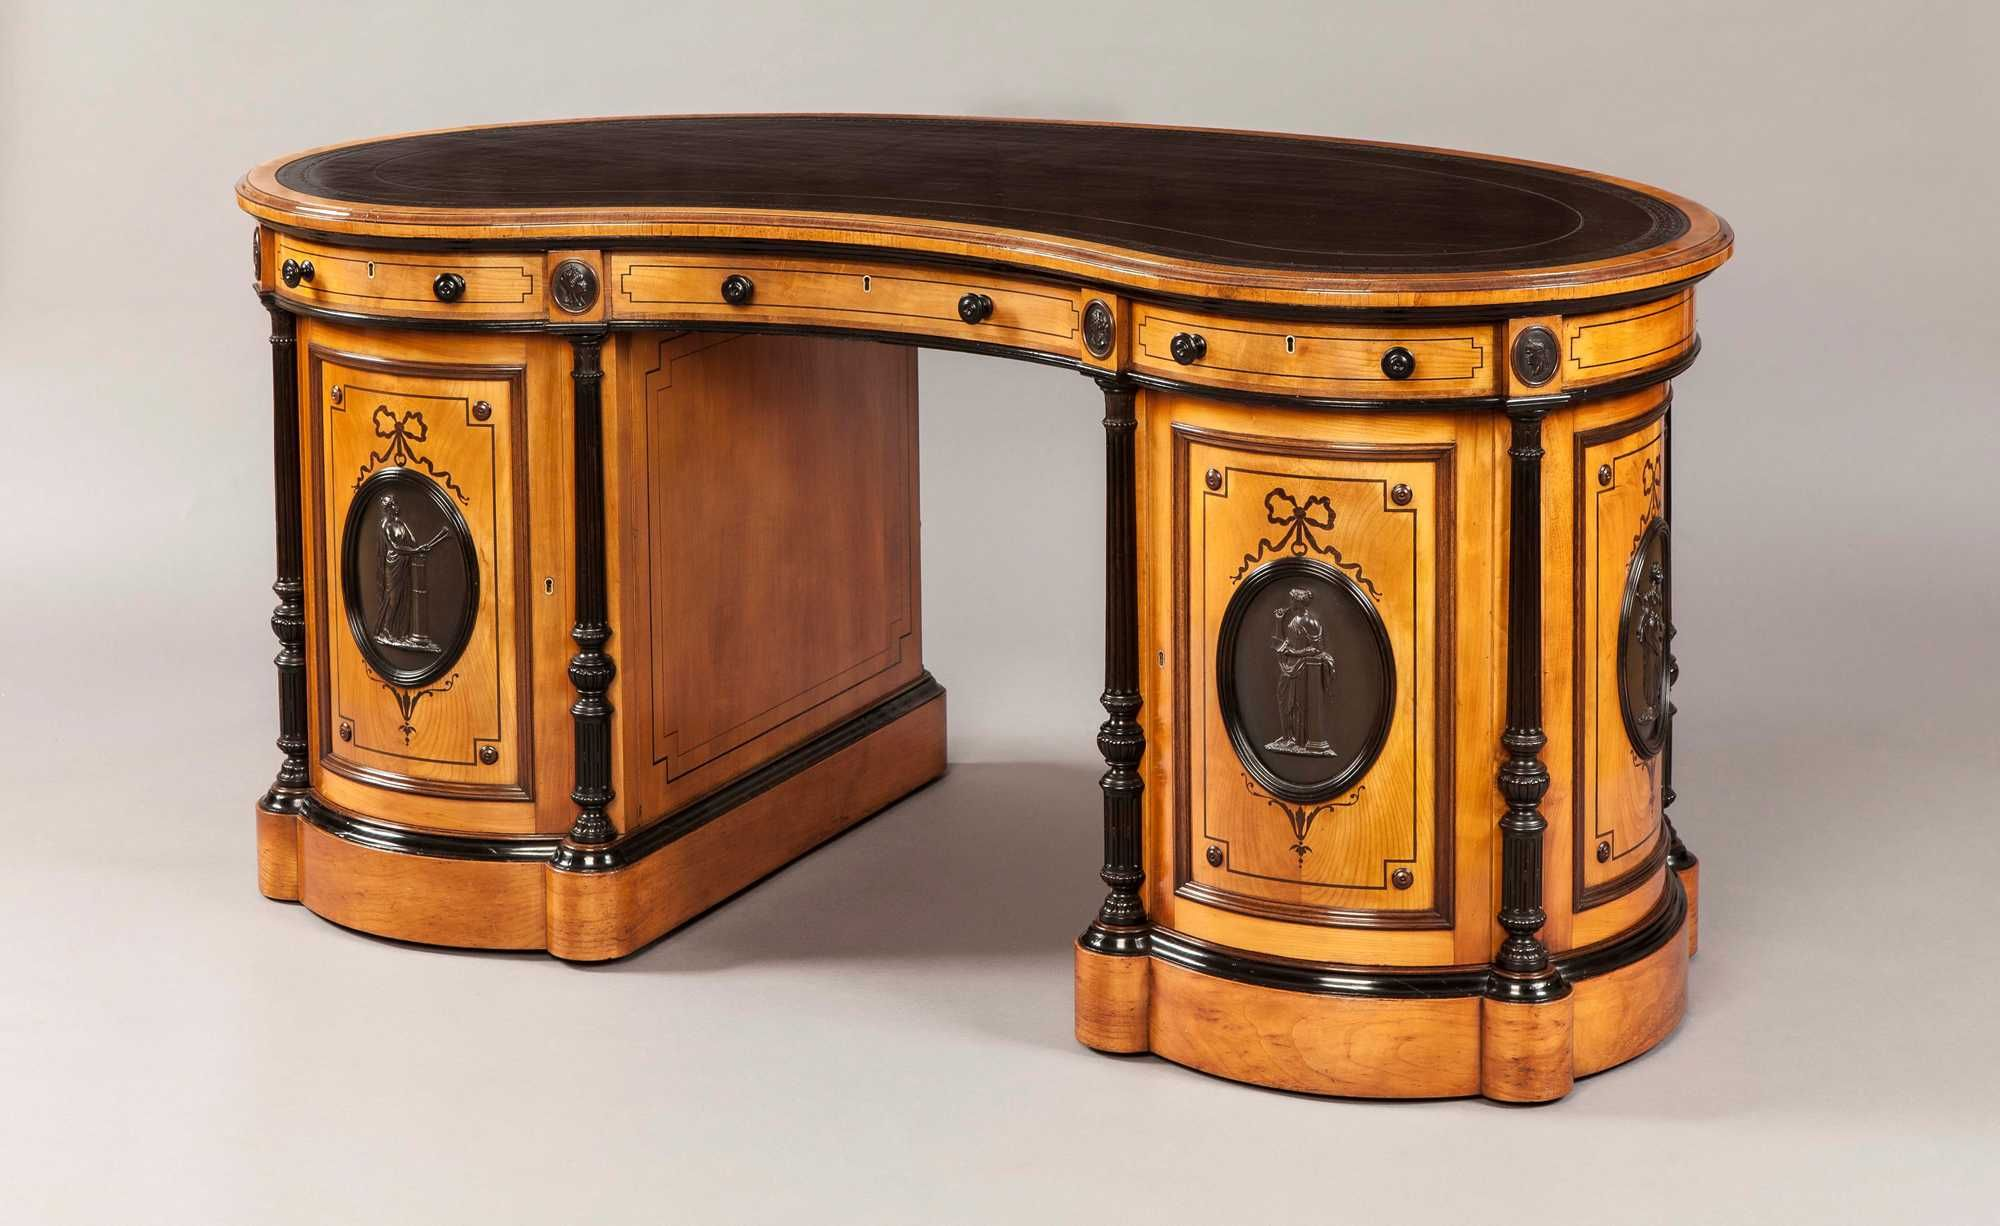 Muebles Italianos Clasicos Wright And Mansfield Kidney Shaped Antique Desk By Wright